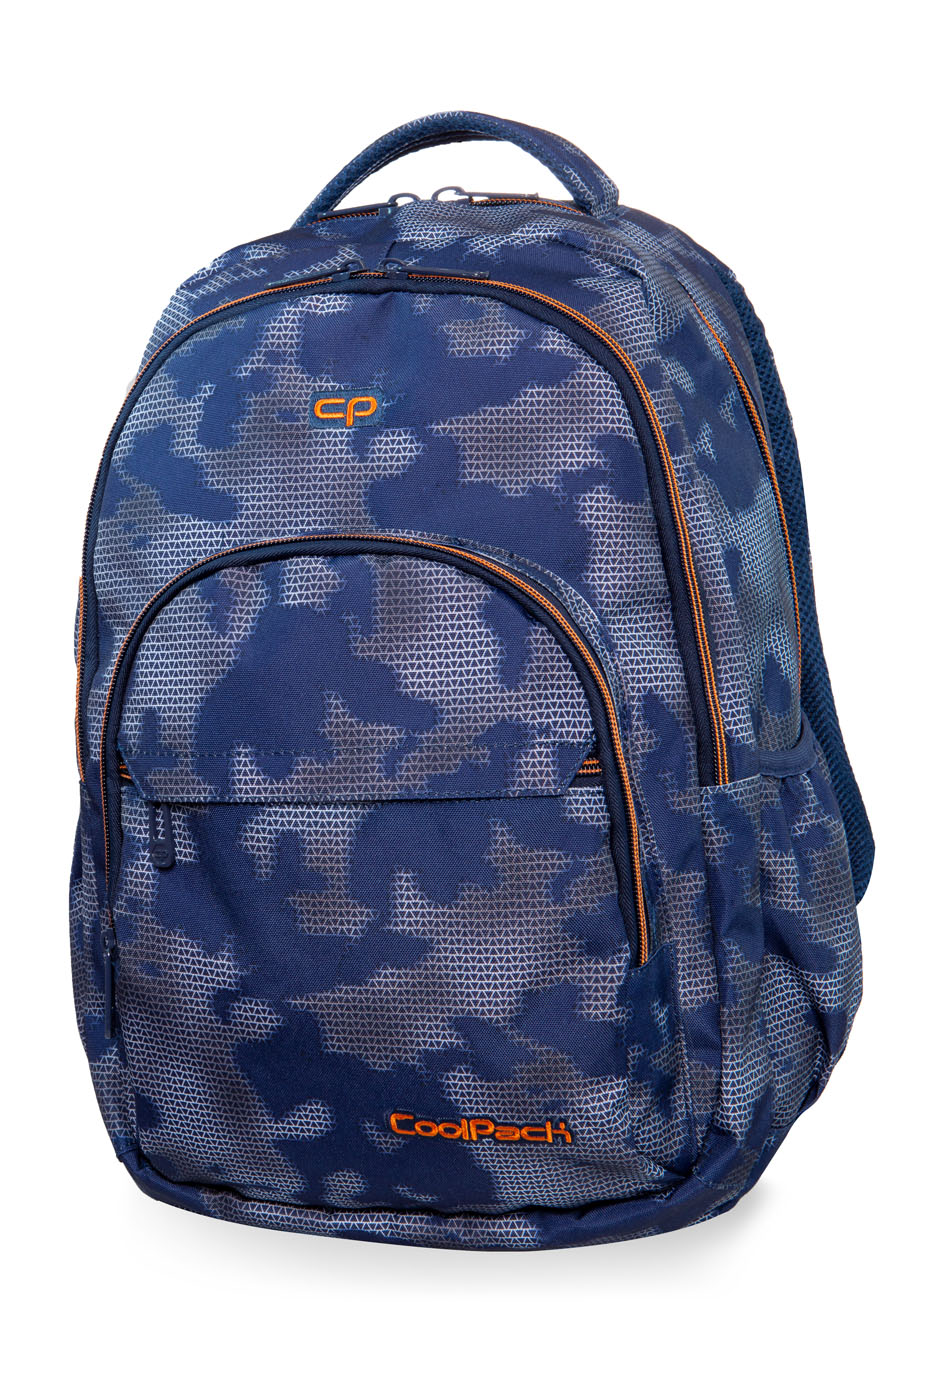 Coolpack - basic plus - youth backpack - misty tangerine